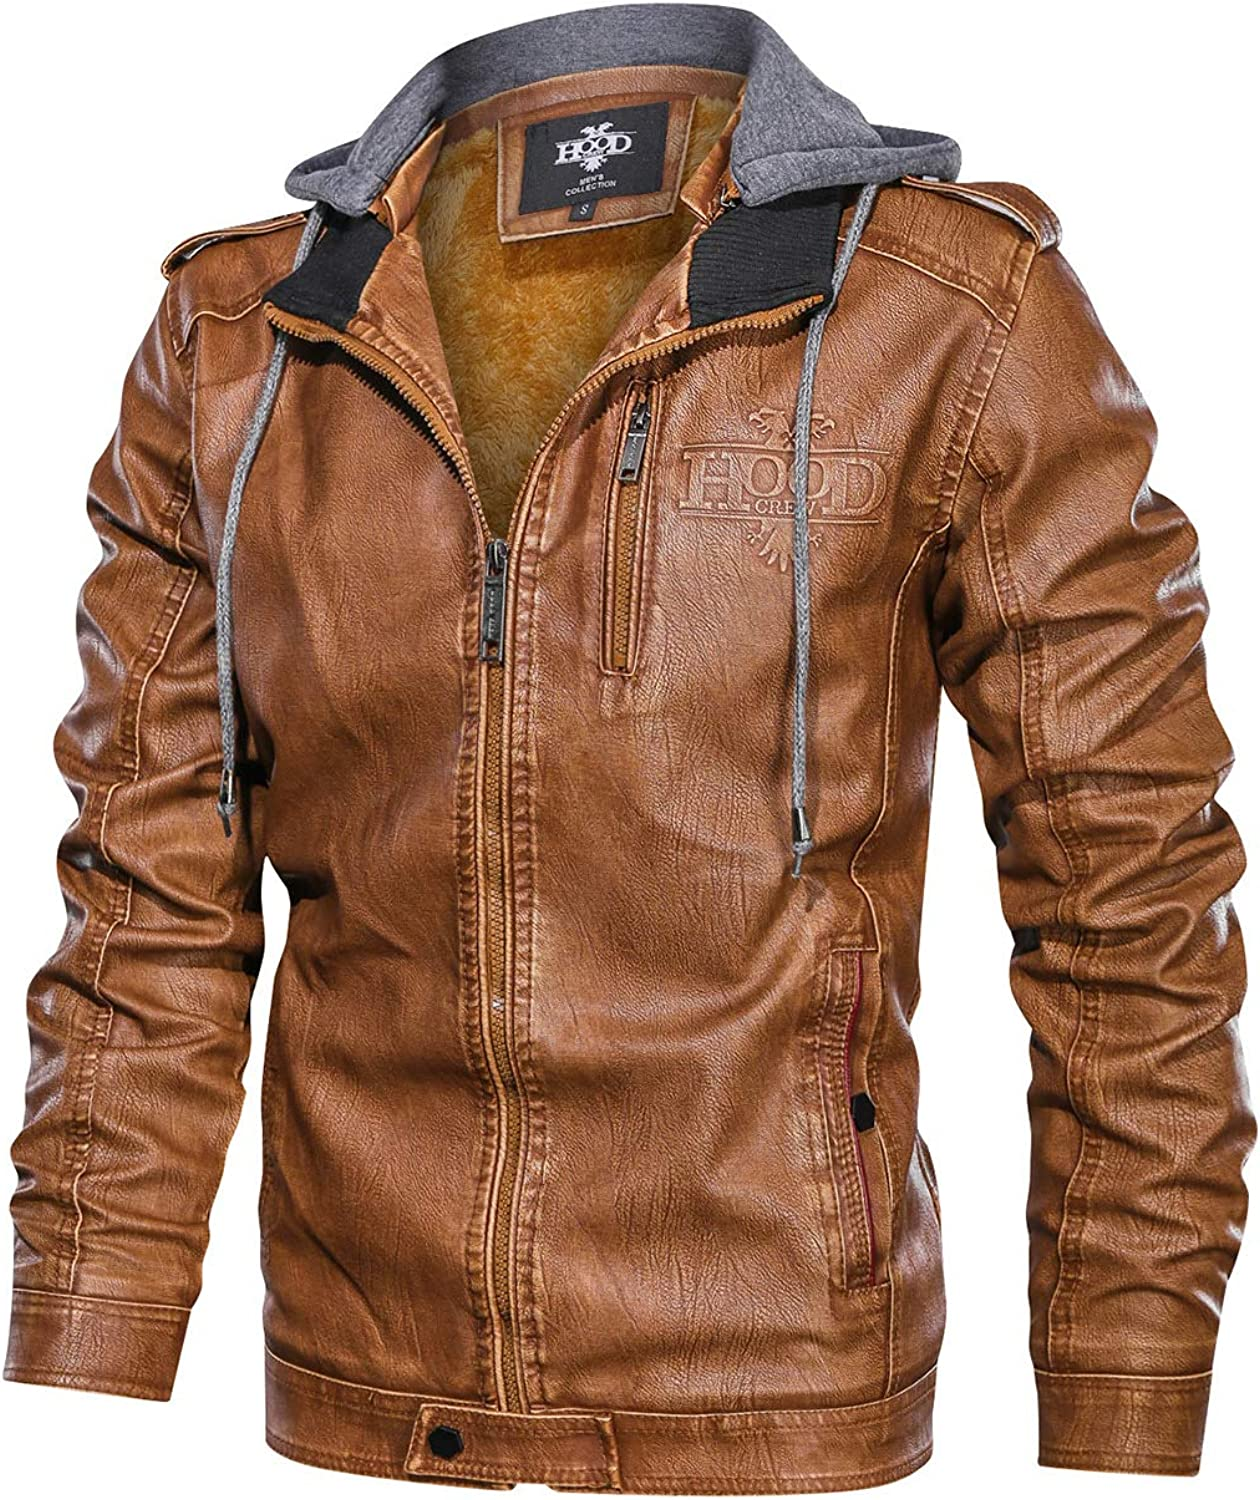 HOOD CREW Men's Black Brown Coffee Stand Collar Warm PU Faux Leather Zip-Up Motorcycle Jacket with a Removable Hood